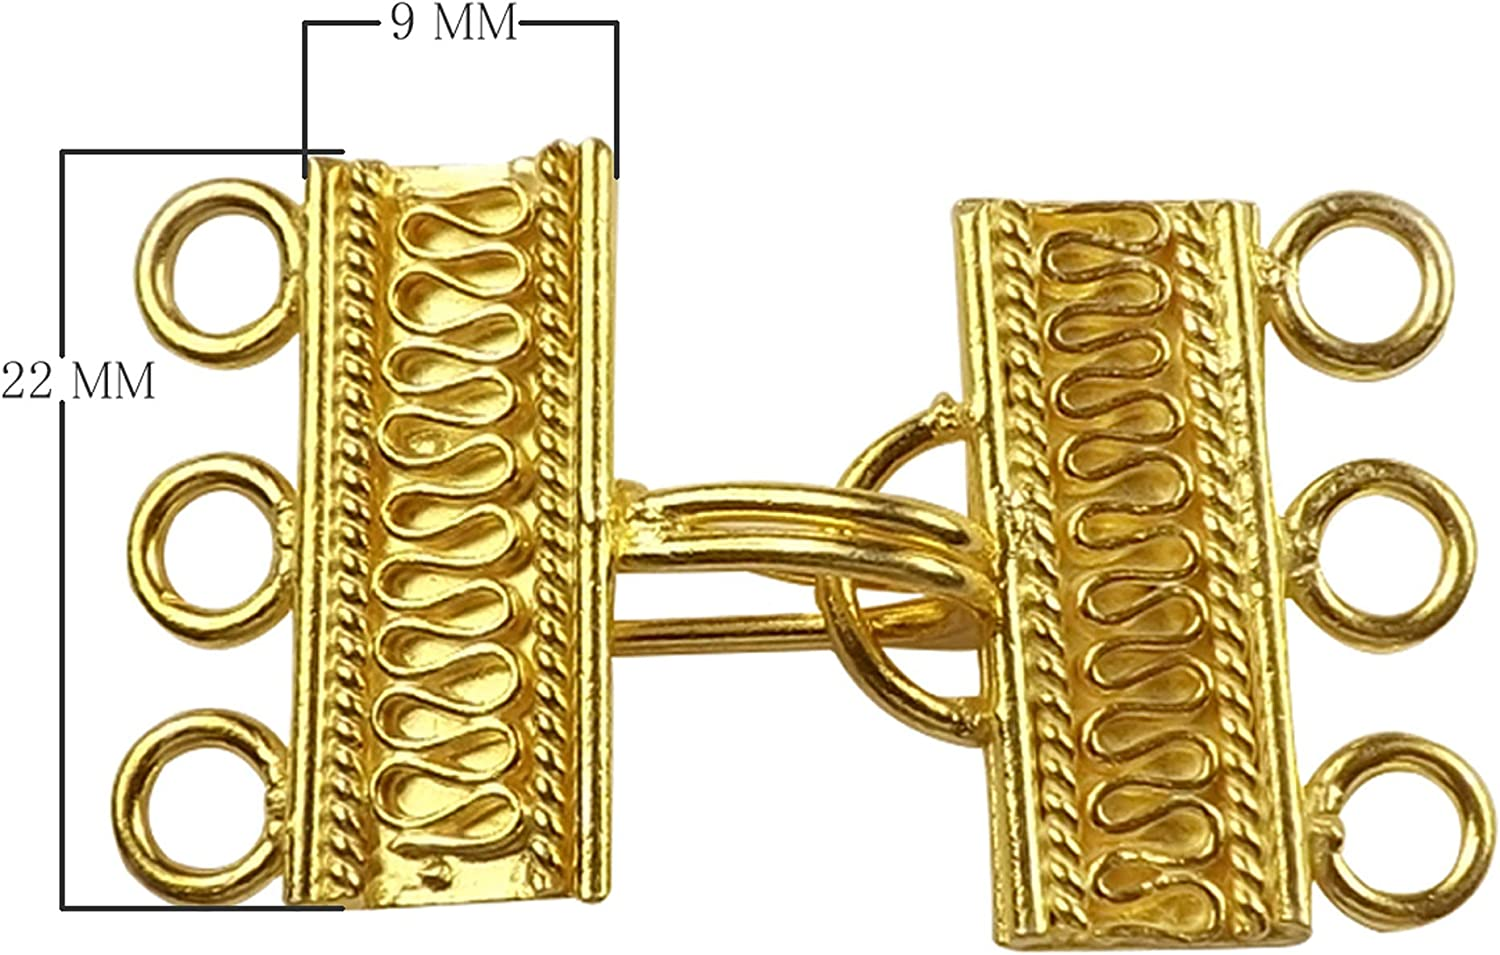 Connector 16mm Necklace 5pcs Flower Gold Plating 3 Hole Bracelet Textured Round Gold Box Clasp Link